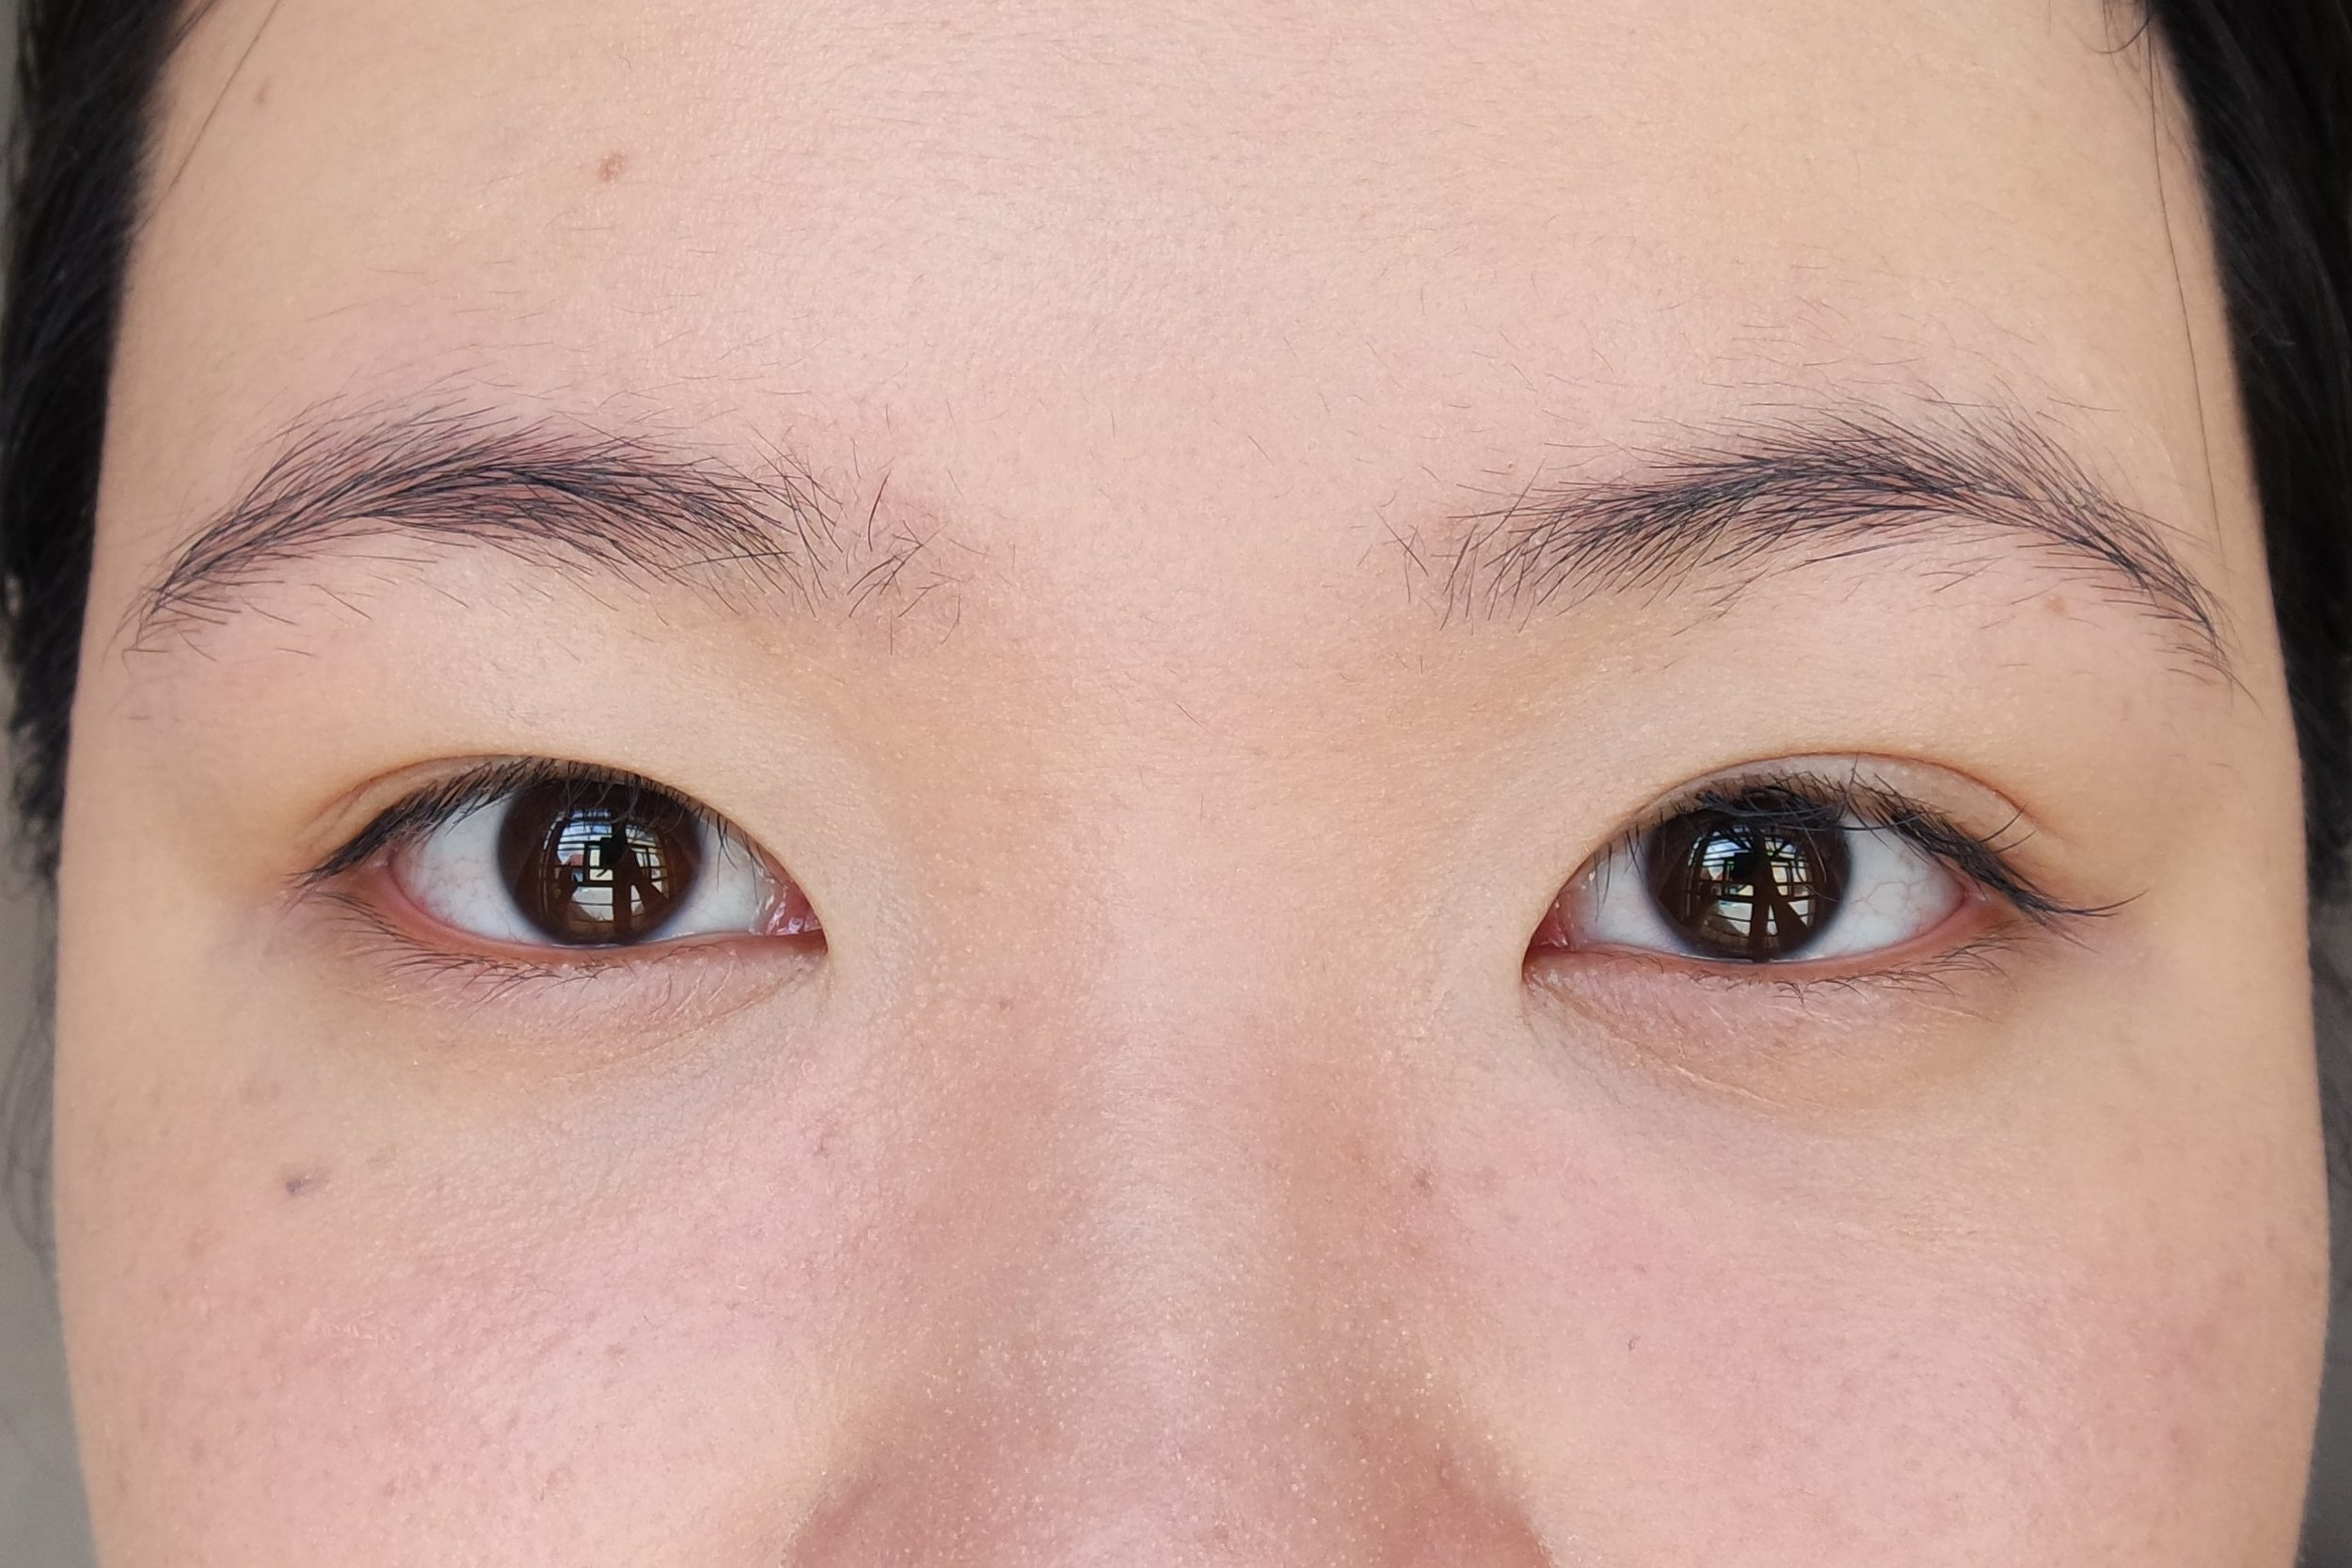 Applied concealer with (from left) a wet sponge and a dry sponge